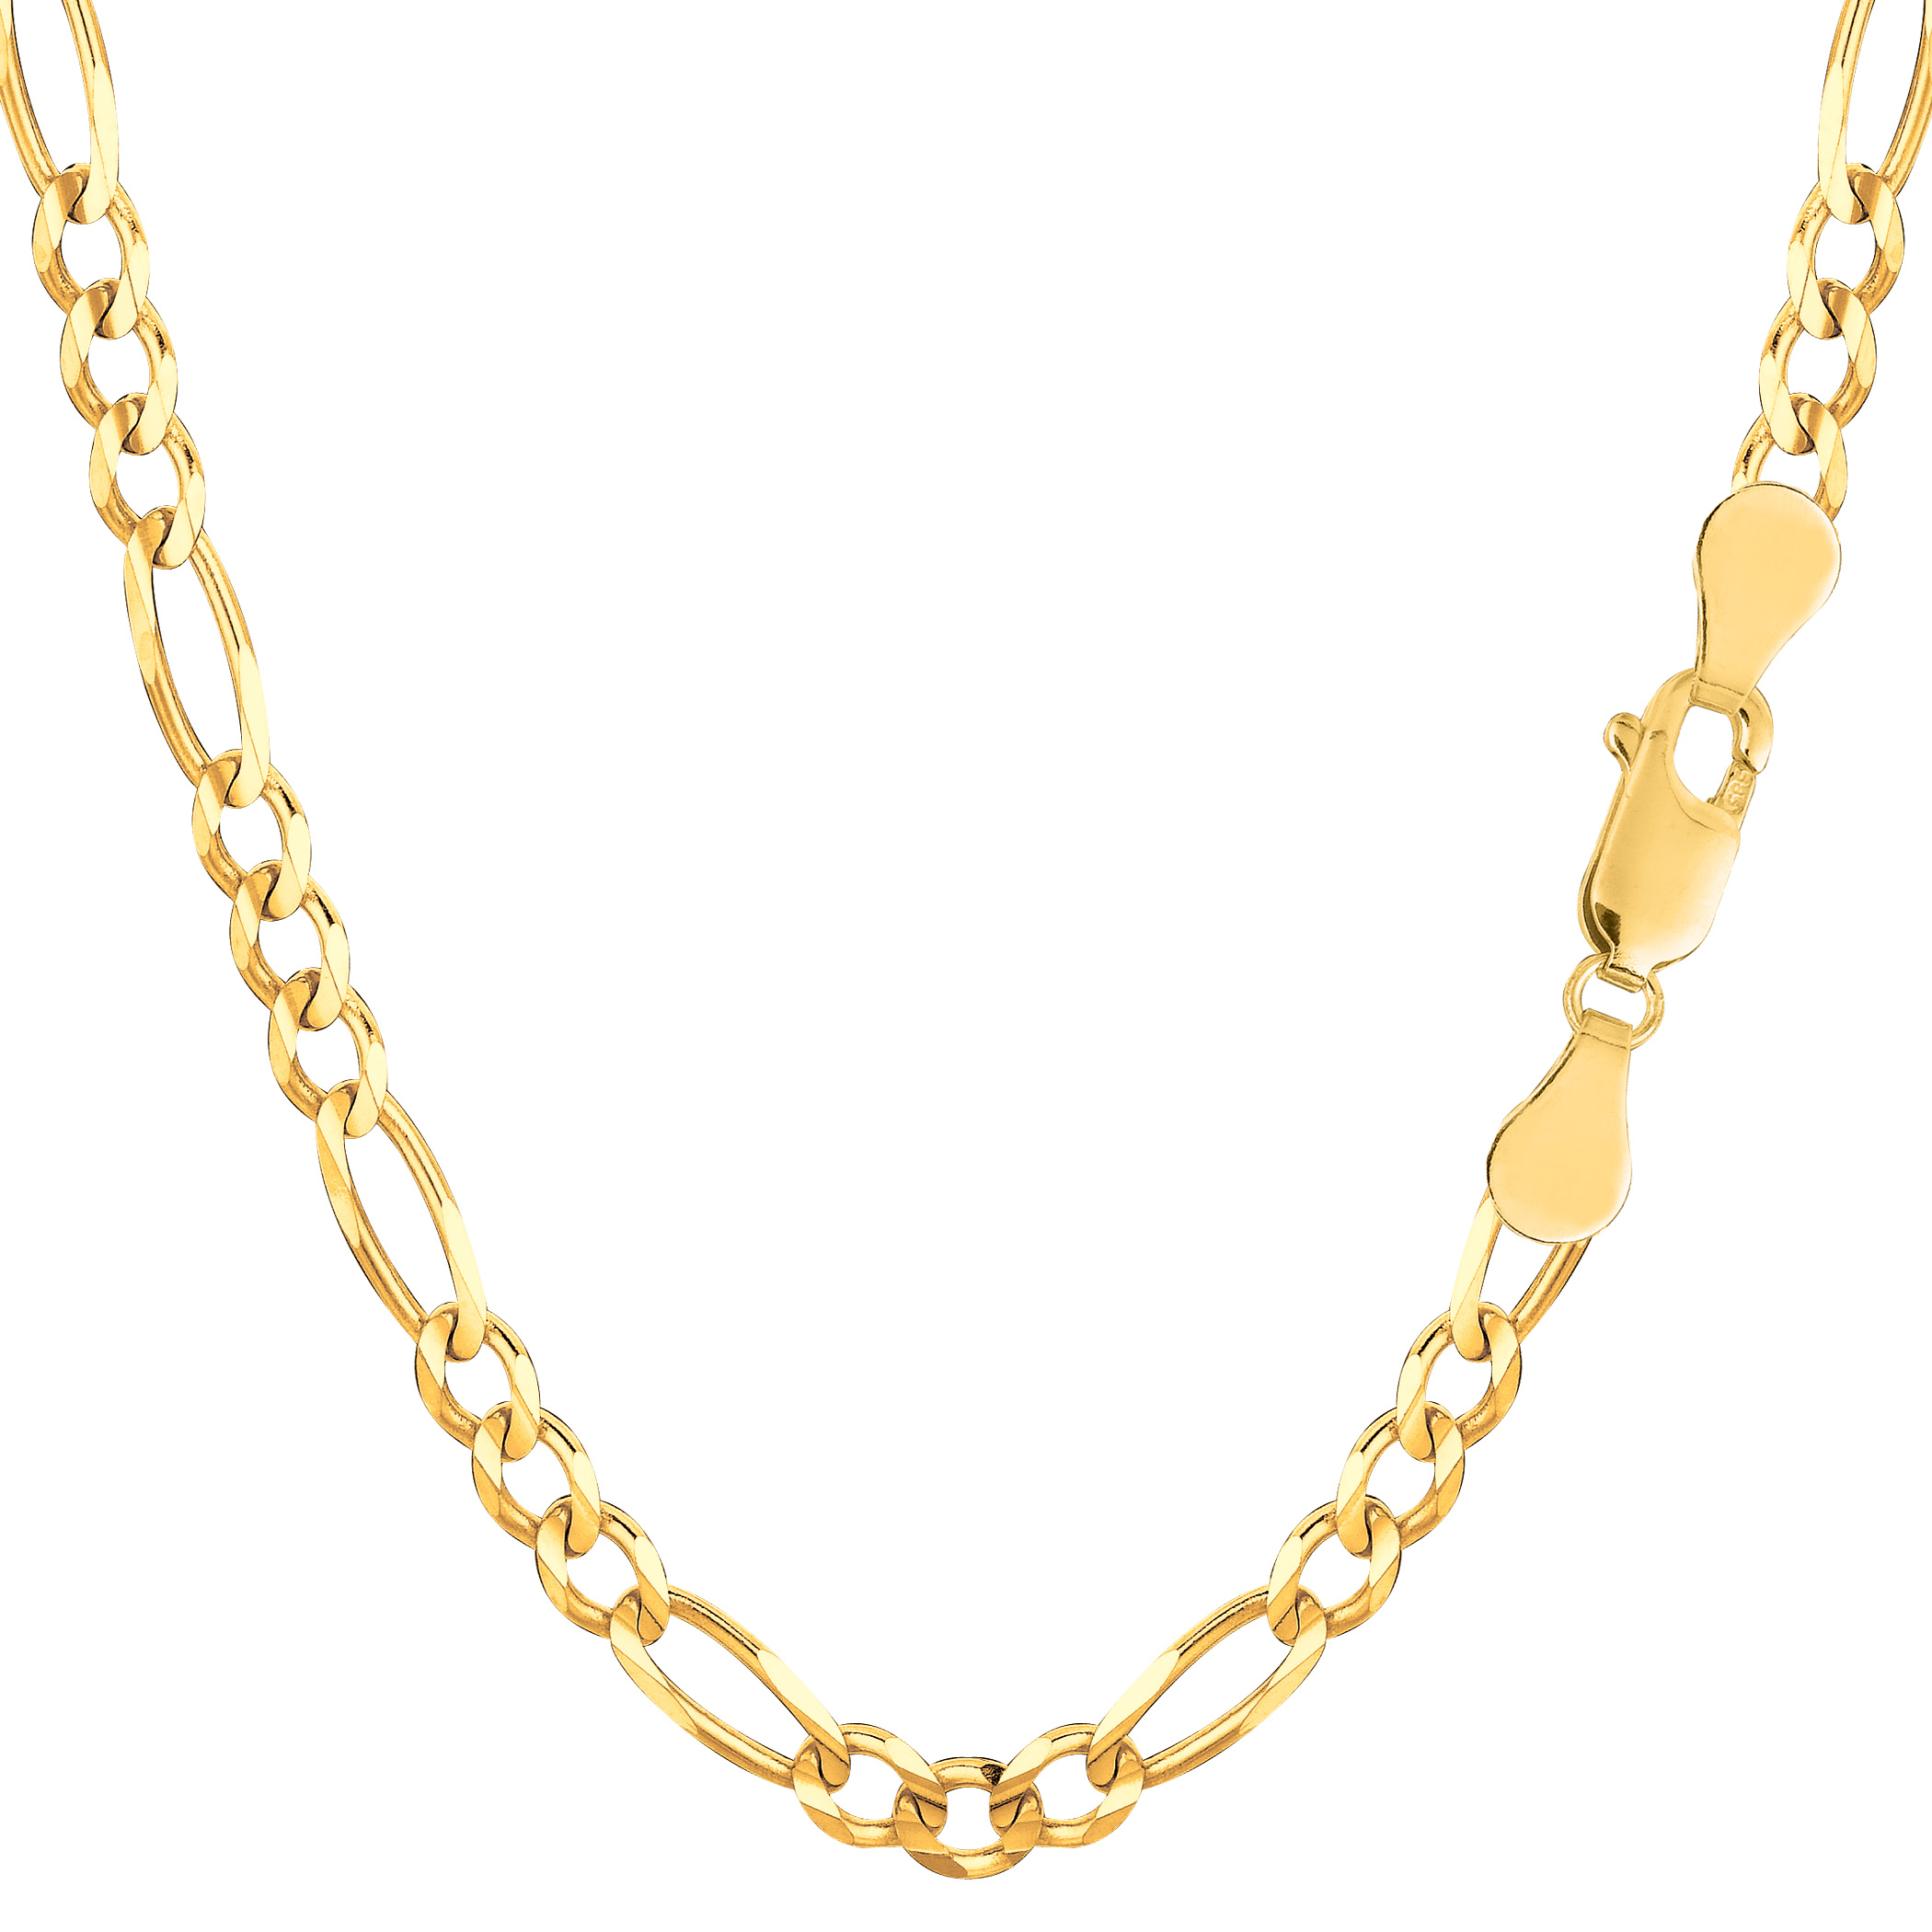 14K Yellow Solid gold Figaro Chain, Width 3.6mm